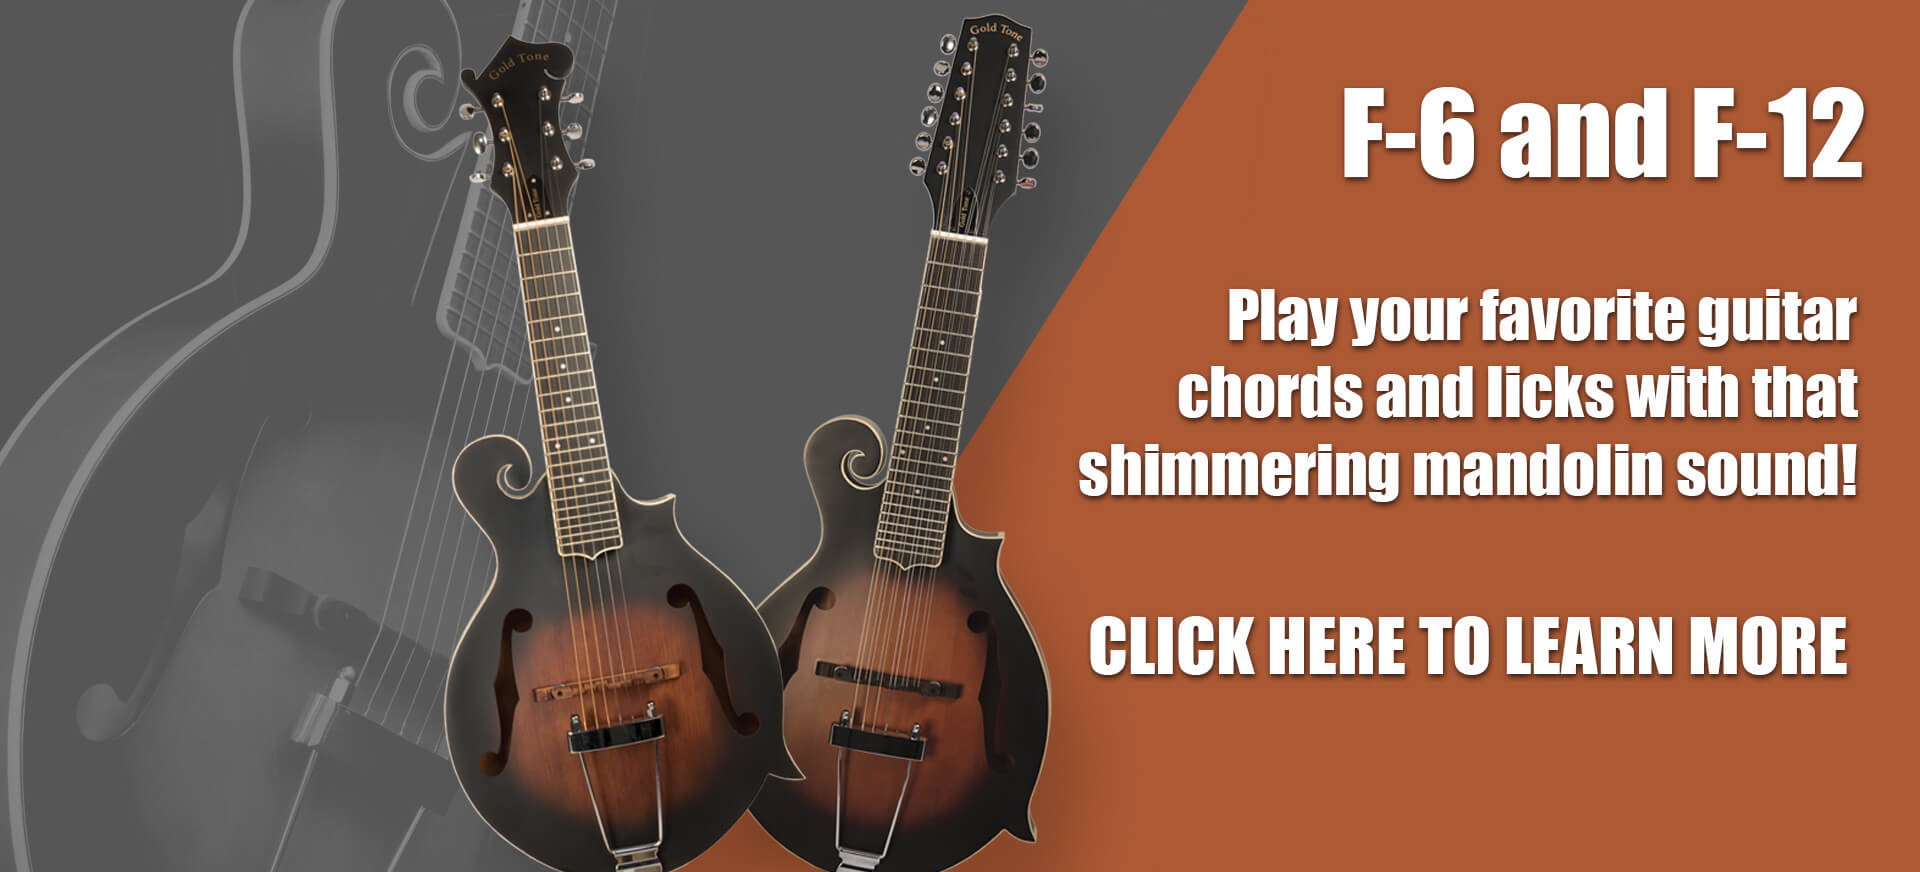 The F-6 and F-12. Play your favorite guitar chords and licks with that shimmering mandolin sound. Click here to learn more!